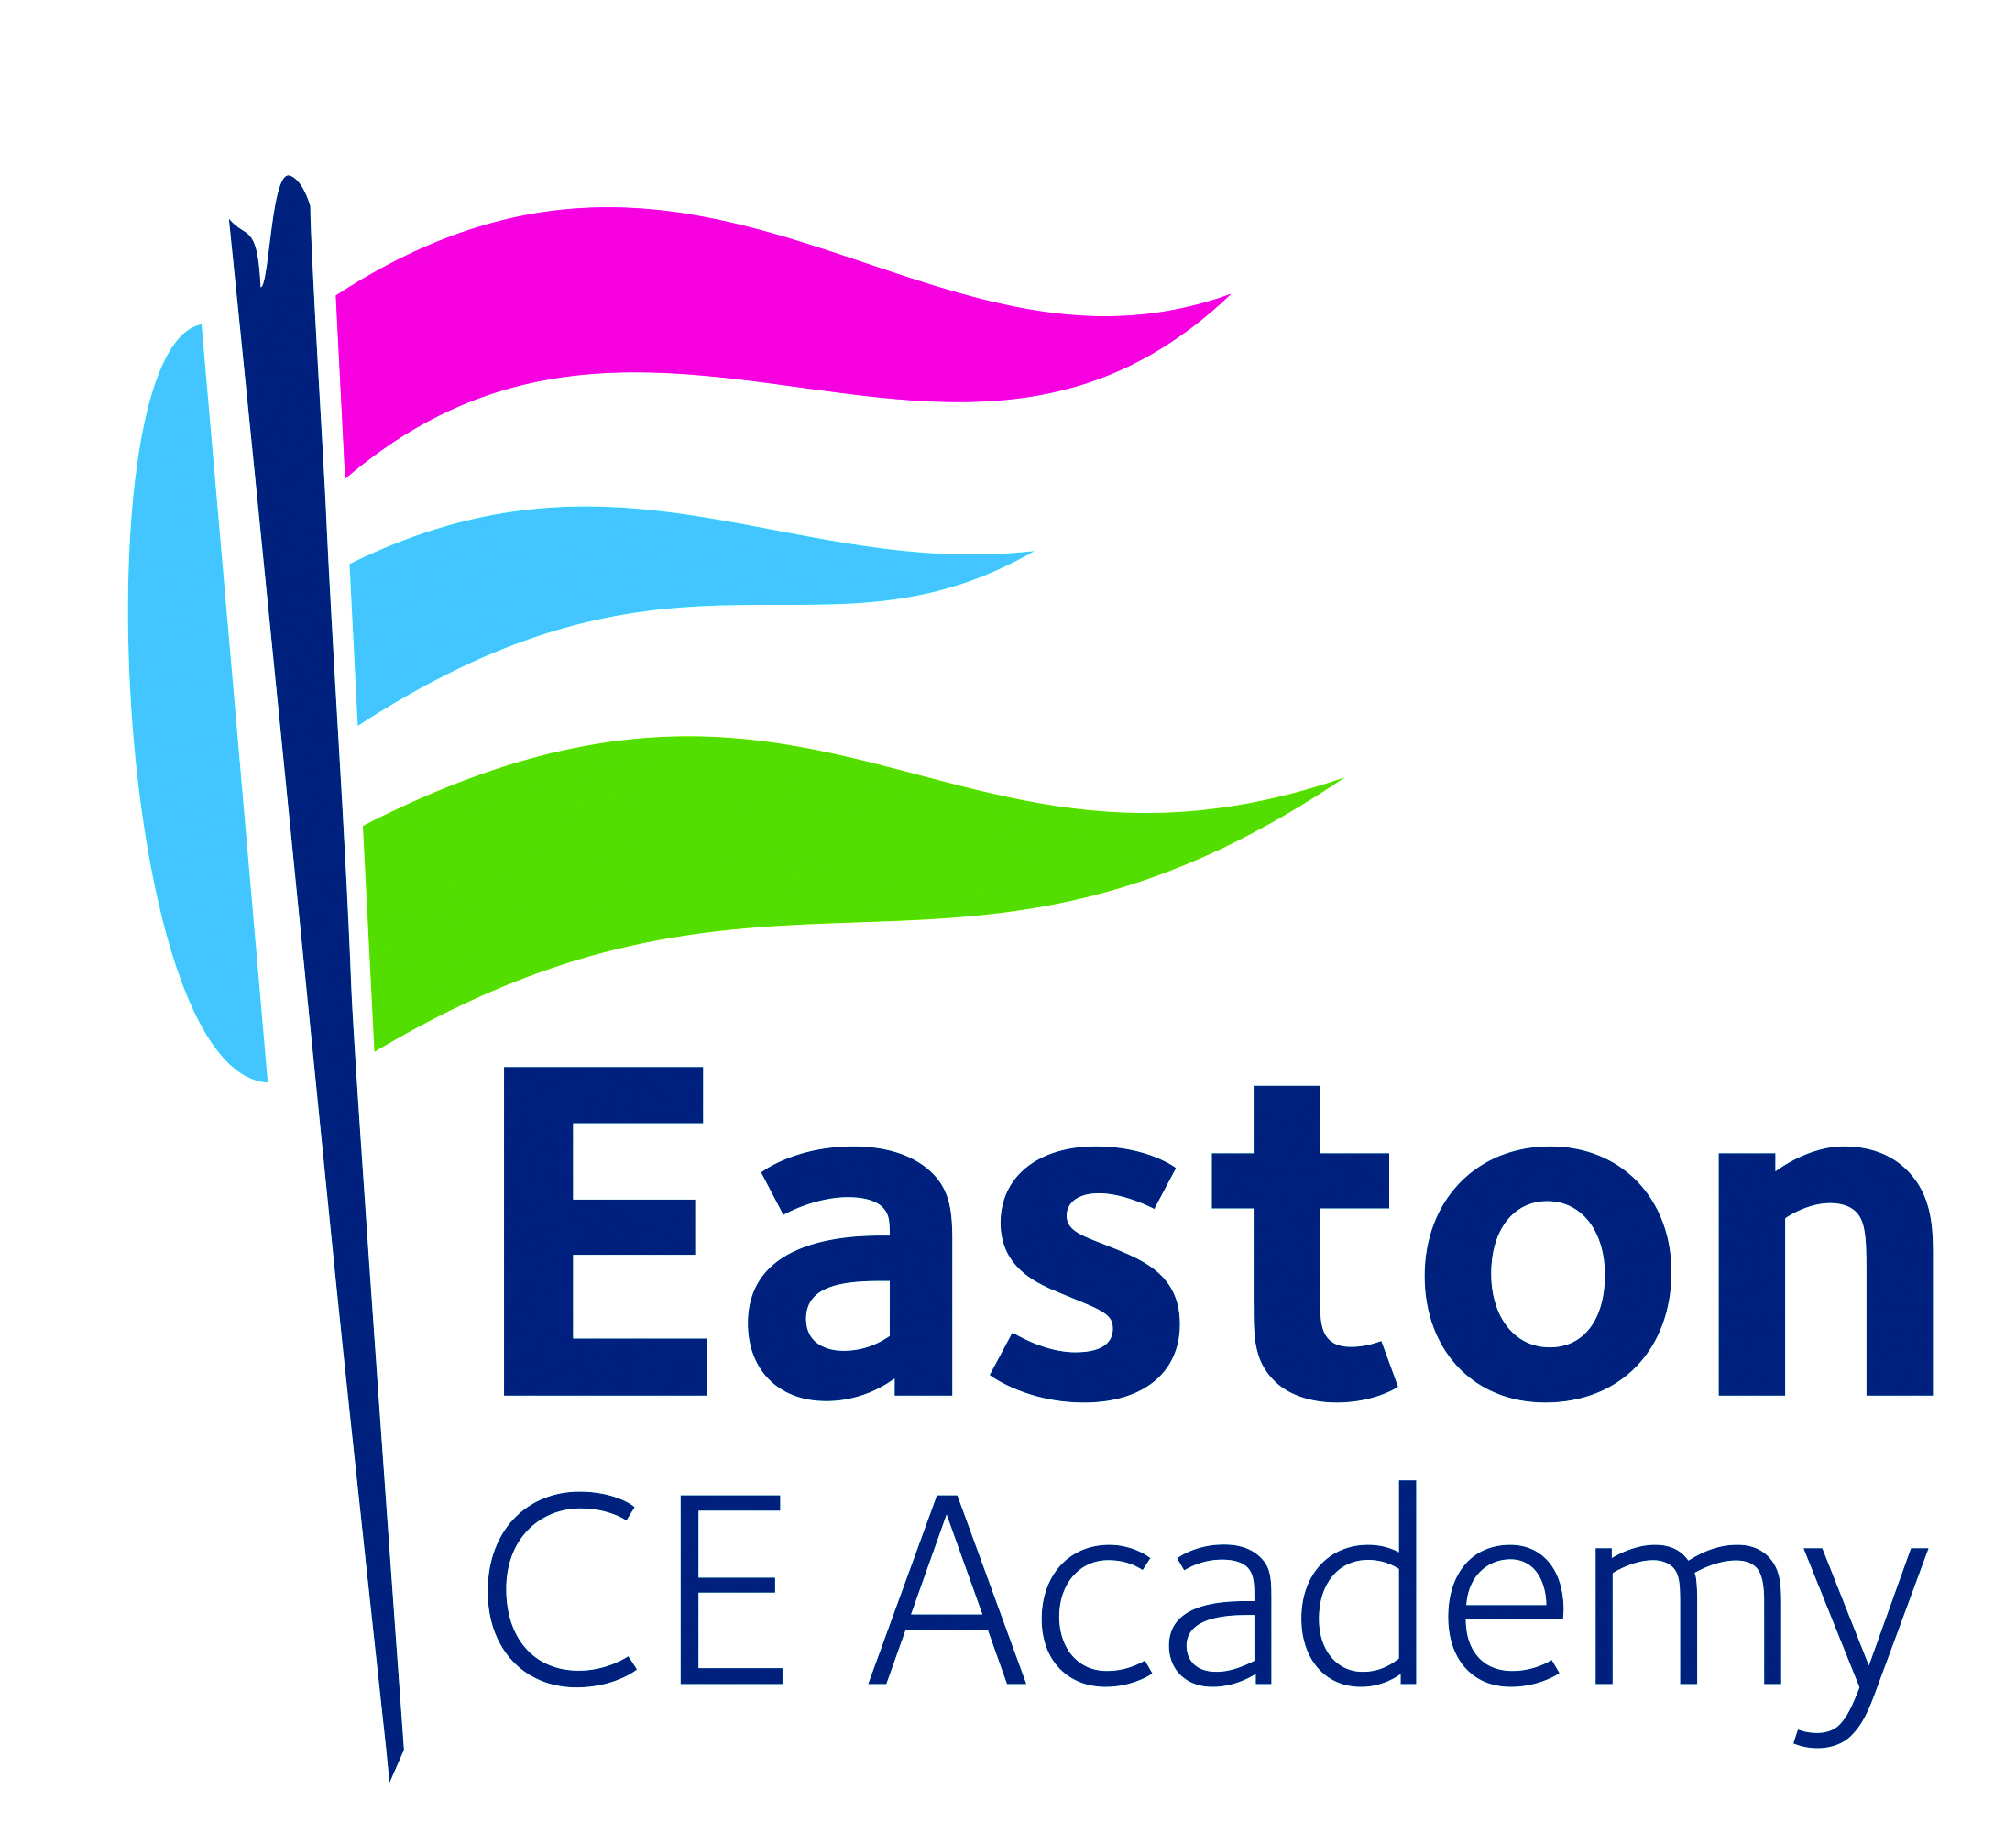 Easton CE Logo